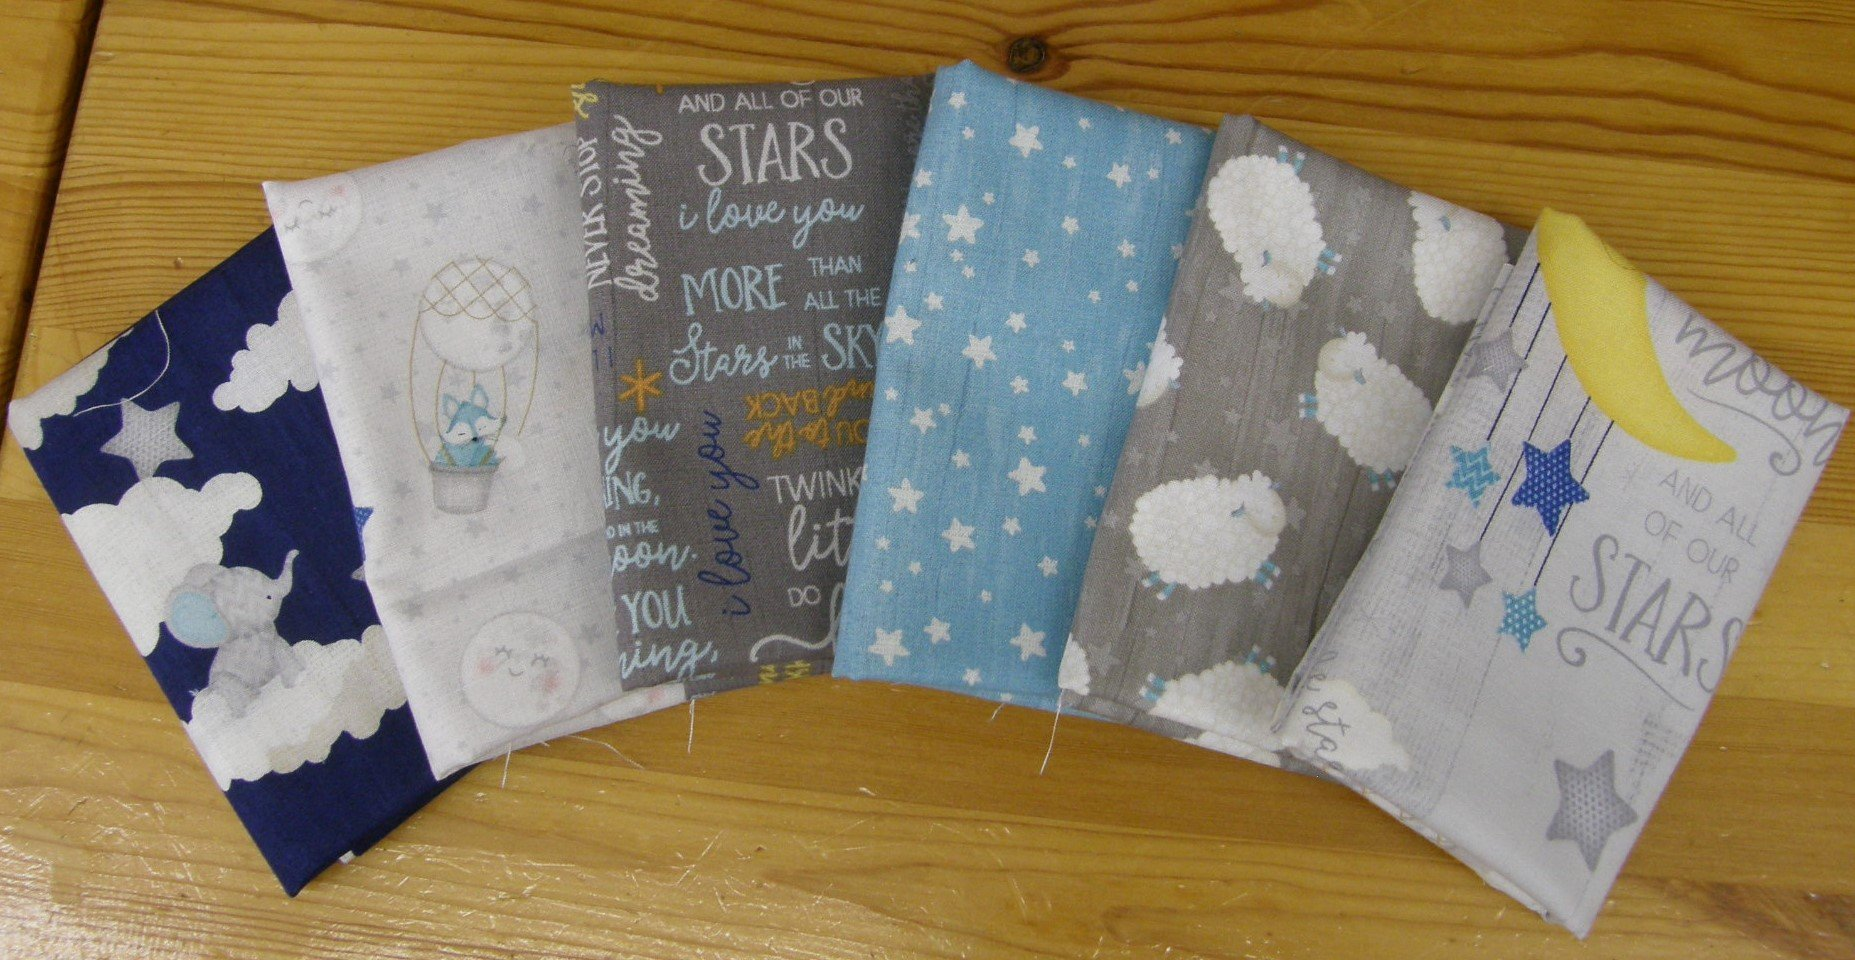 All Our Stars Fat 1/4 Bundle #2 of 6